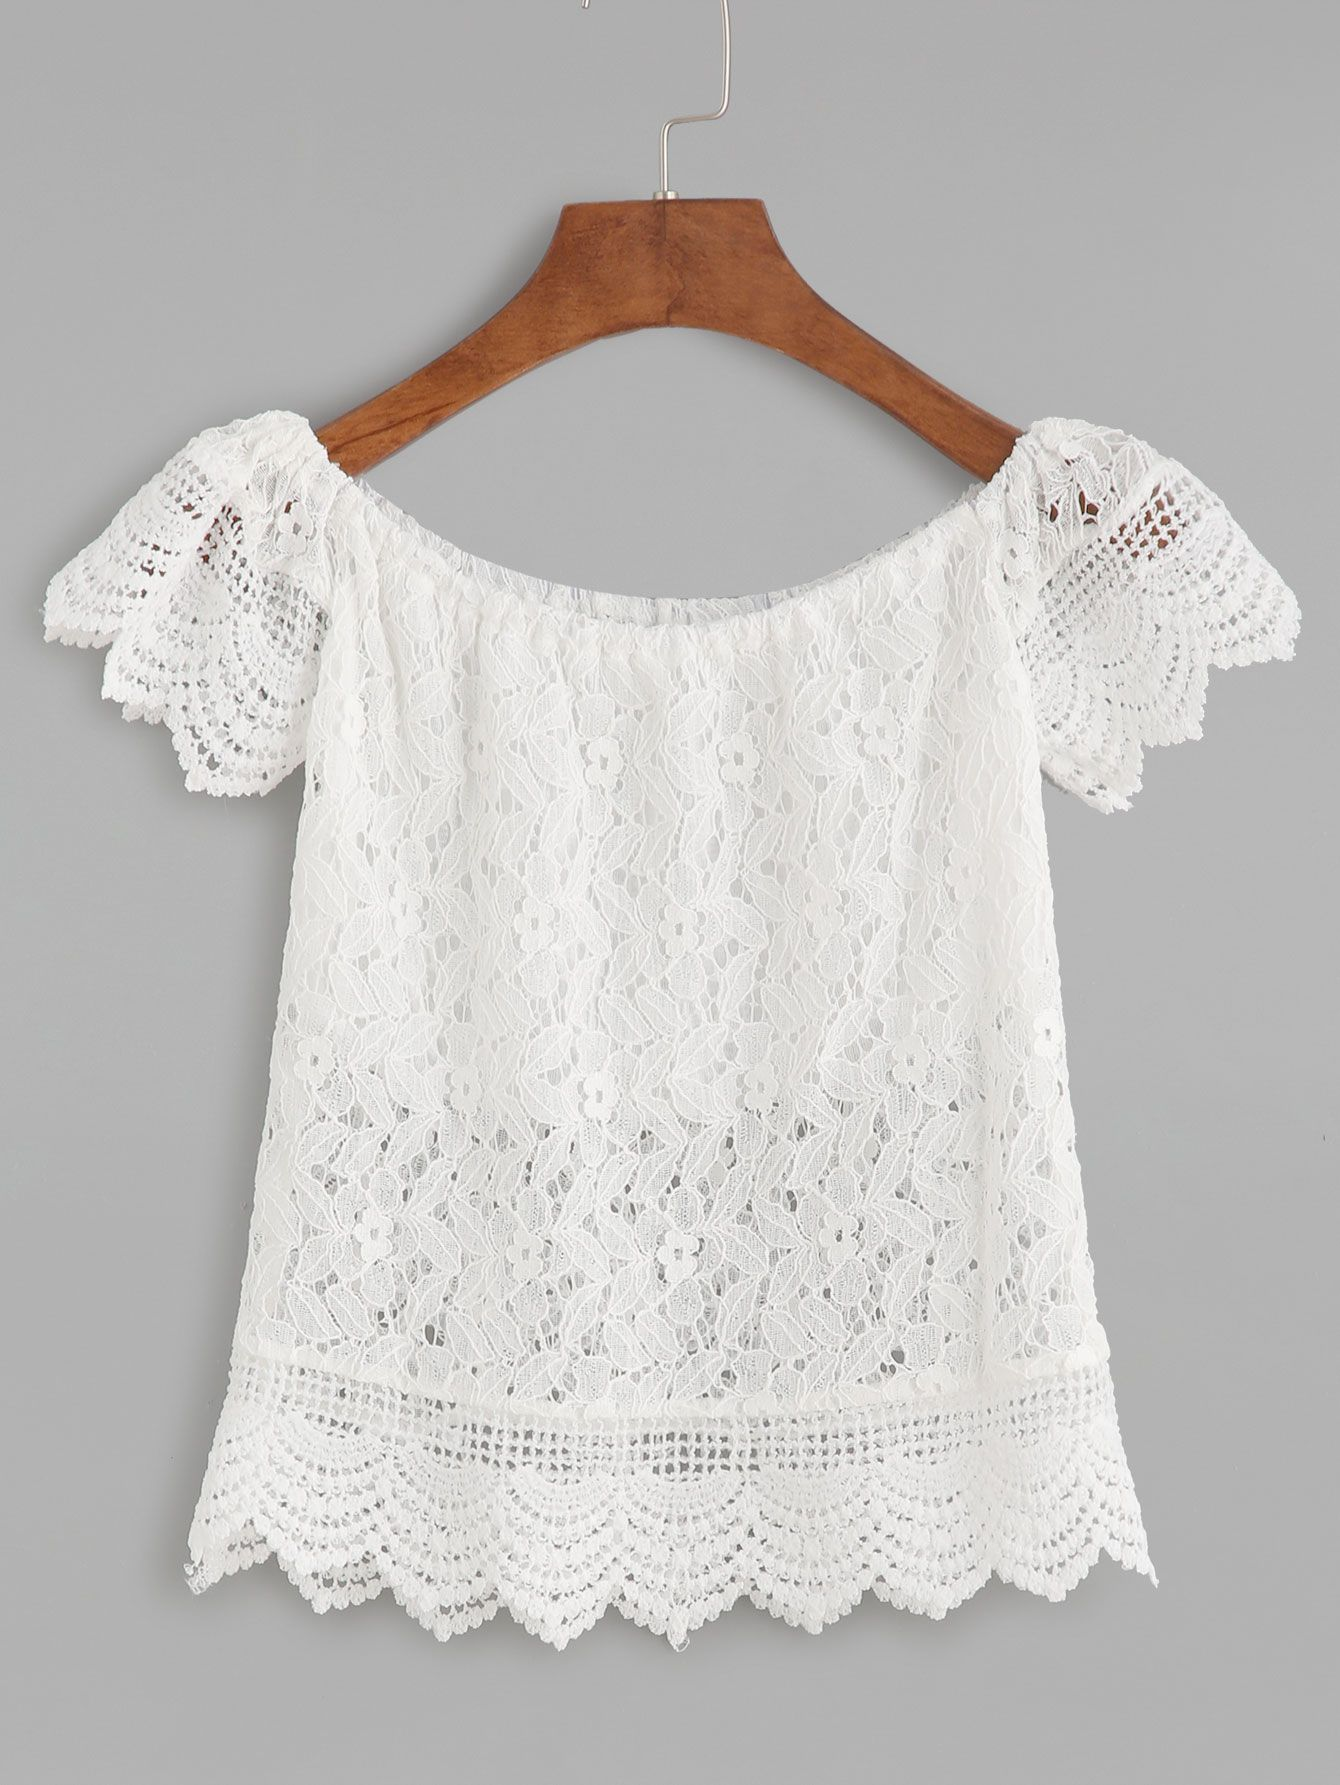 33fc2ce3e9f Shop Boat Neck Crochet Lace Scalloped Hollow Out Blouse online. SheIn  offers Boat Neck Crochet Lace Scalloped Hollow Out Blouse & more to fit  your ...